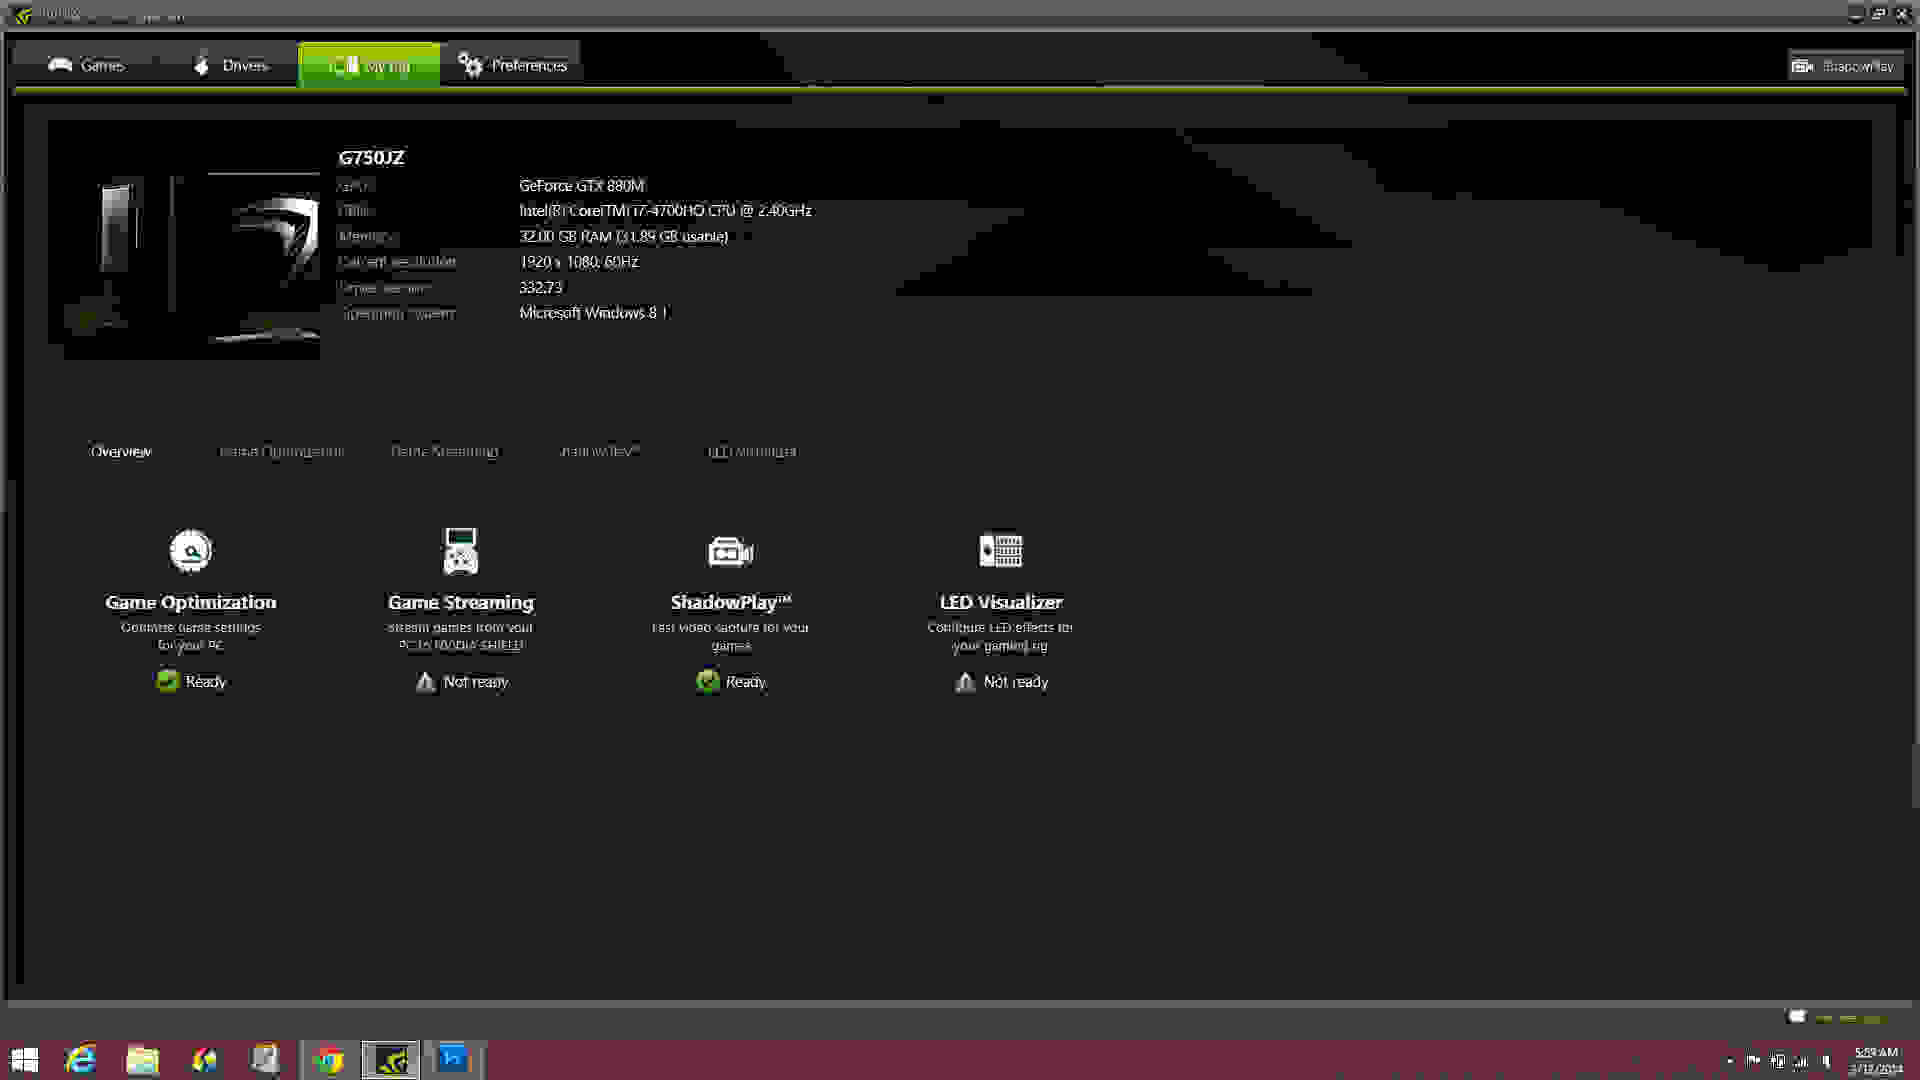 The My Rig tab on Nvidia's GeForce Experience